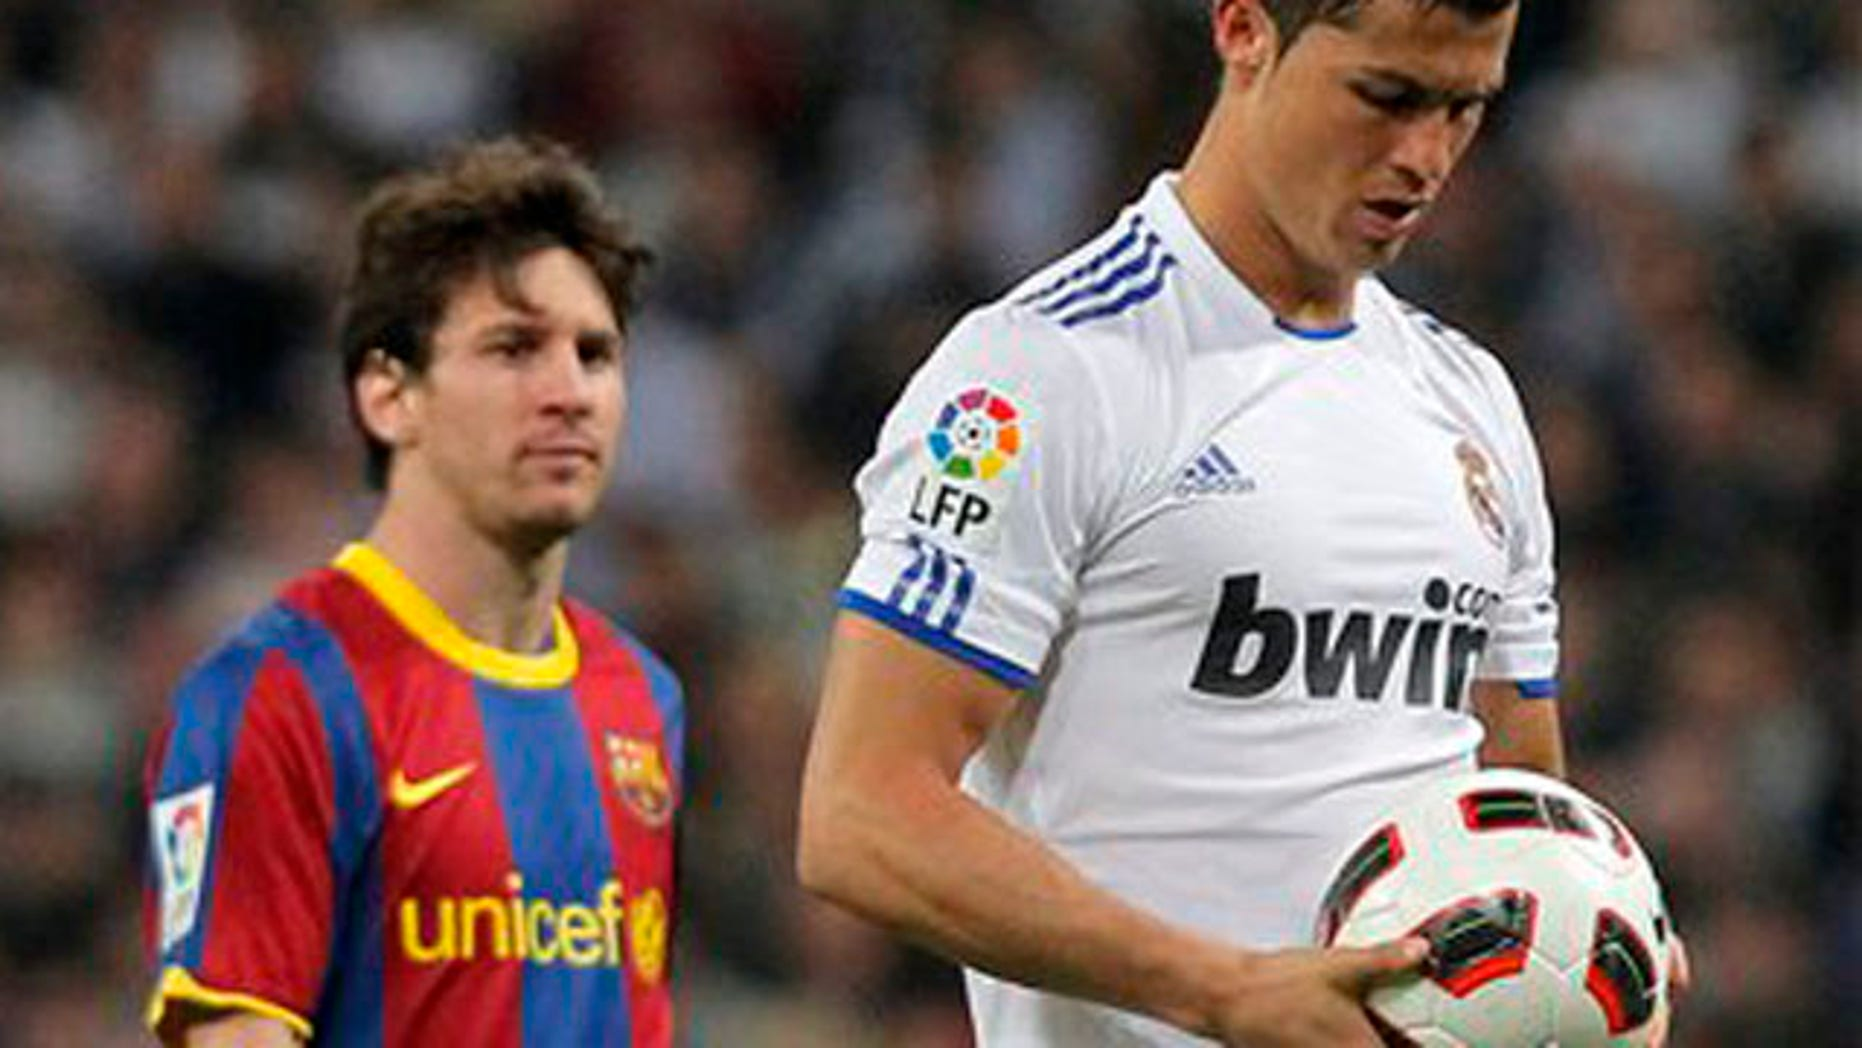 Real Madrid's  Cristiano Ronaldo from Portugal, right, holds the ball besides Barcelona's  Lionel Messi from Argentina, during their Spanish La Liga soccer match at the Santiago Bernabeu stadium in Madrid, Saturday, April 16, 2011. (AP Photo/Andres Kudacki)